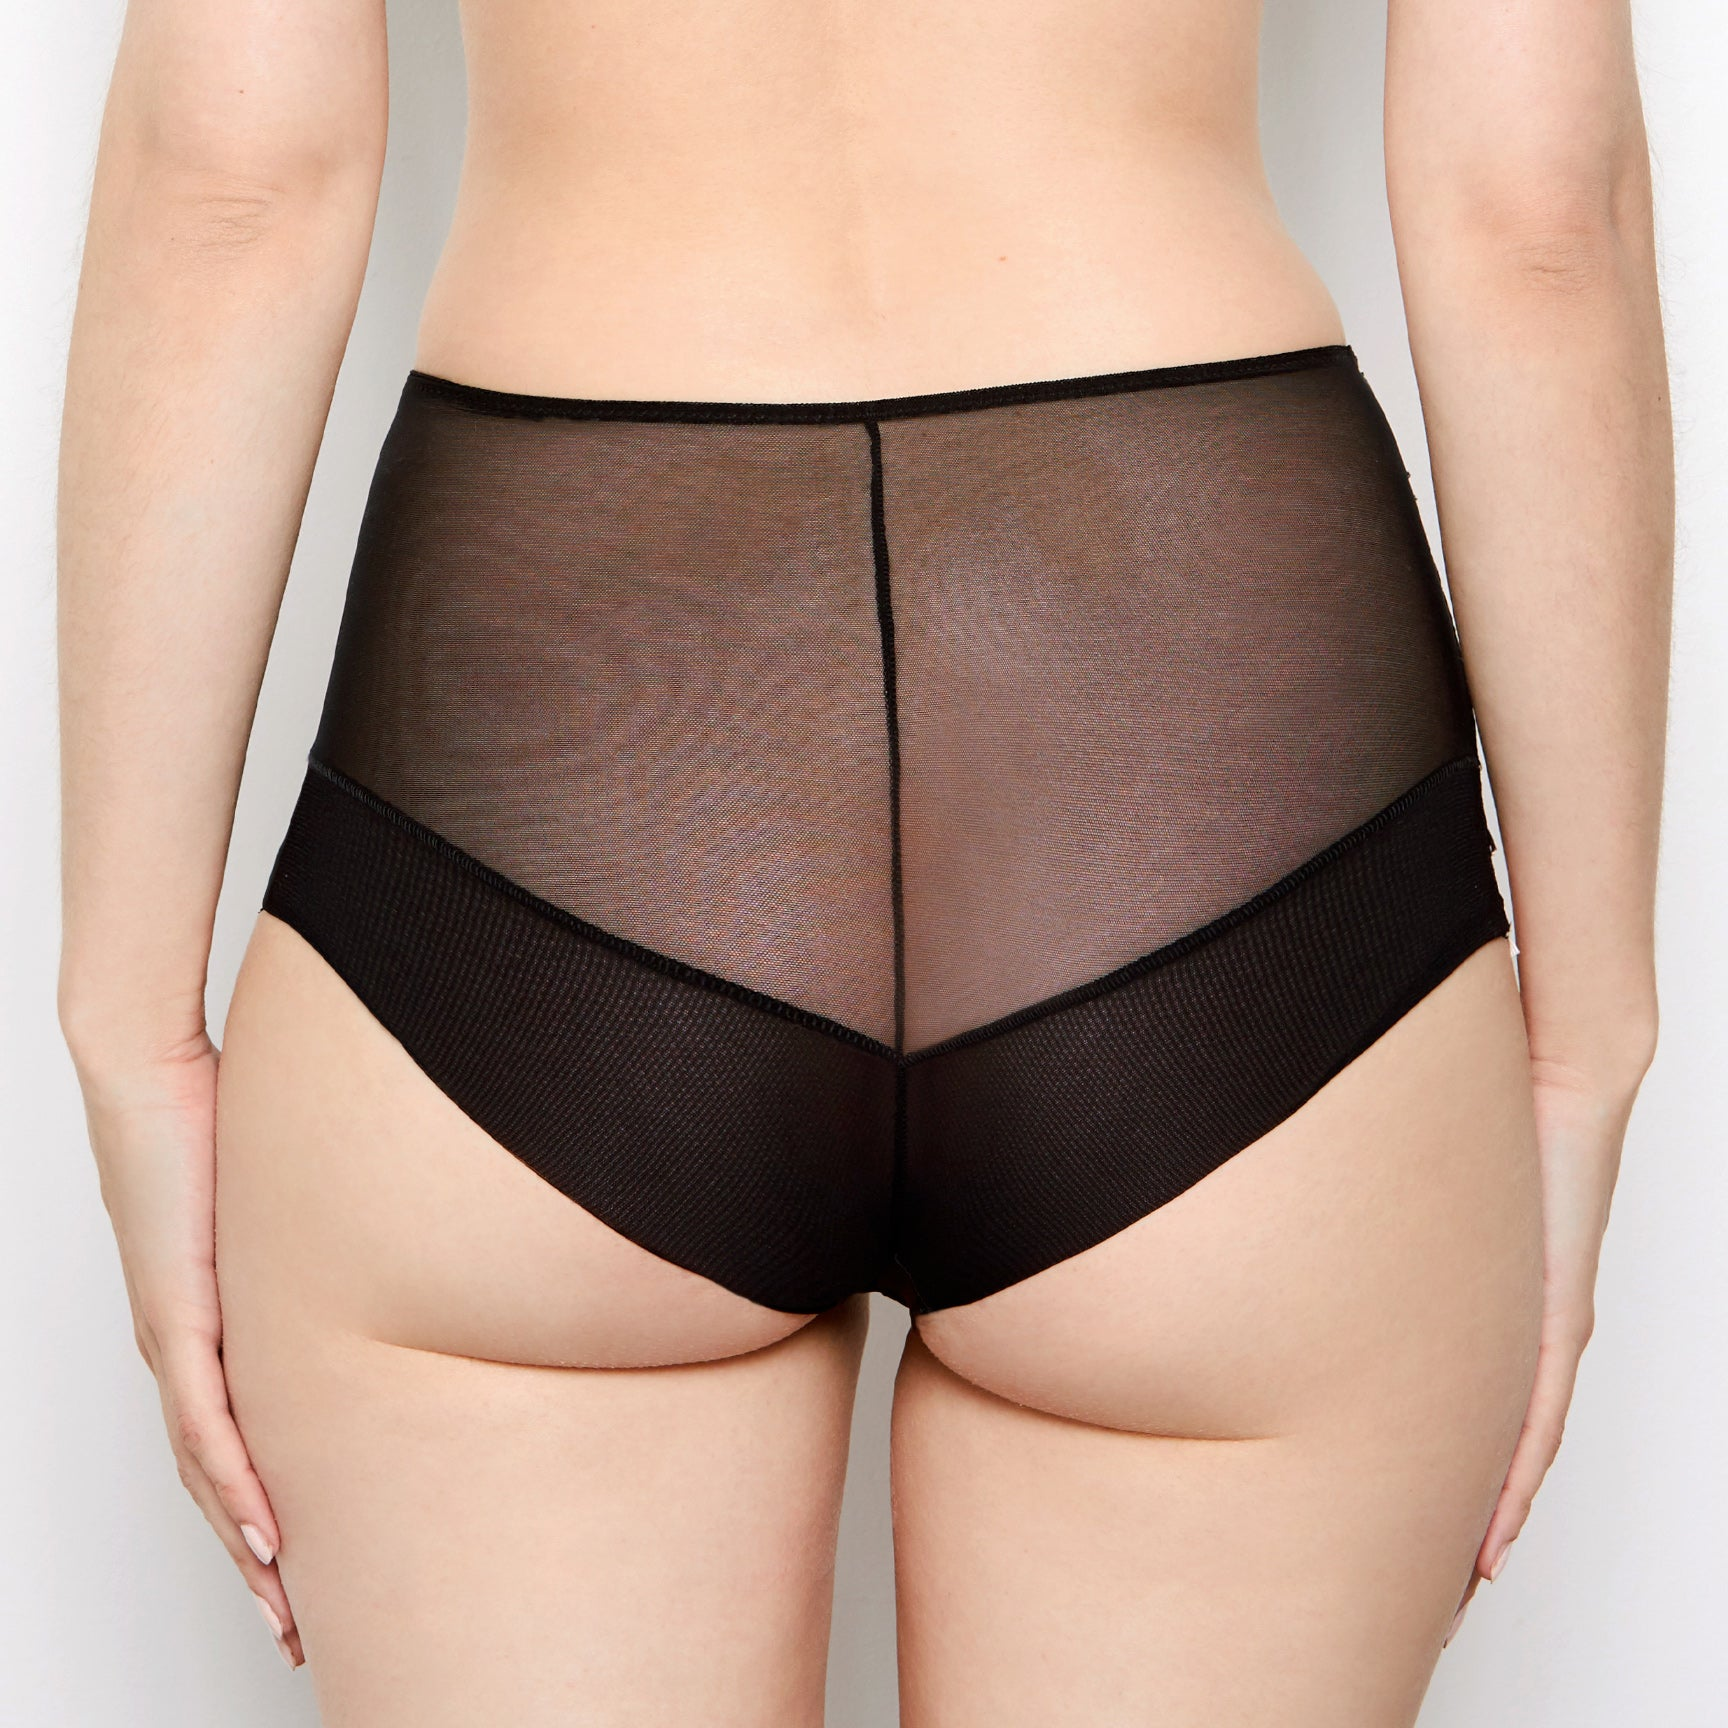 Mariella Black Lace High Waisted Knickers